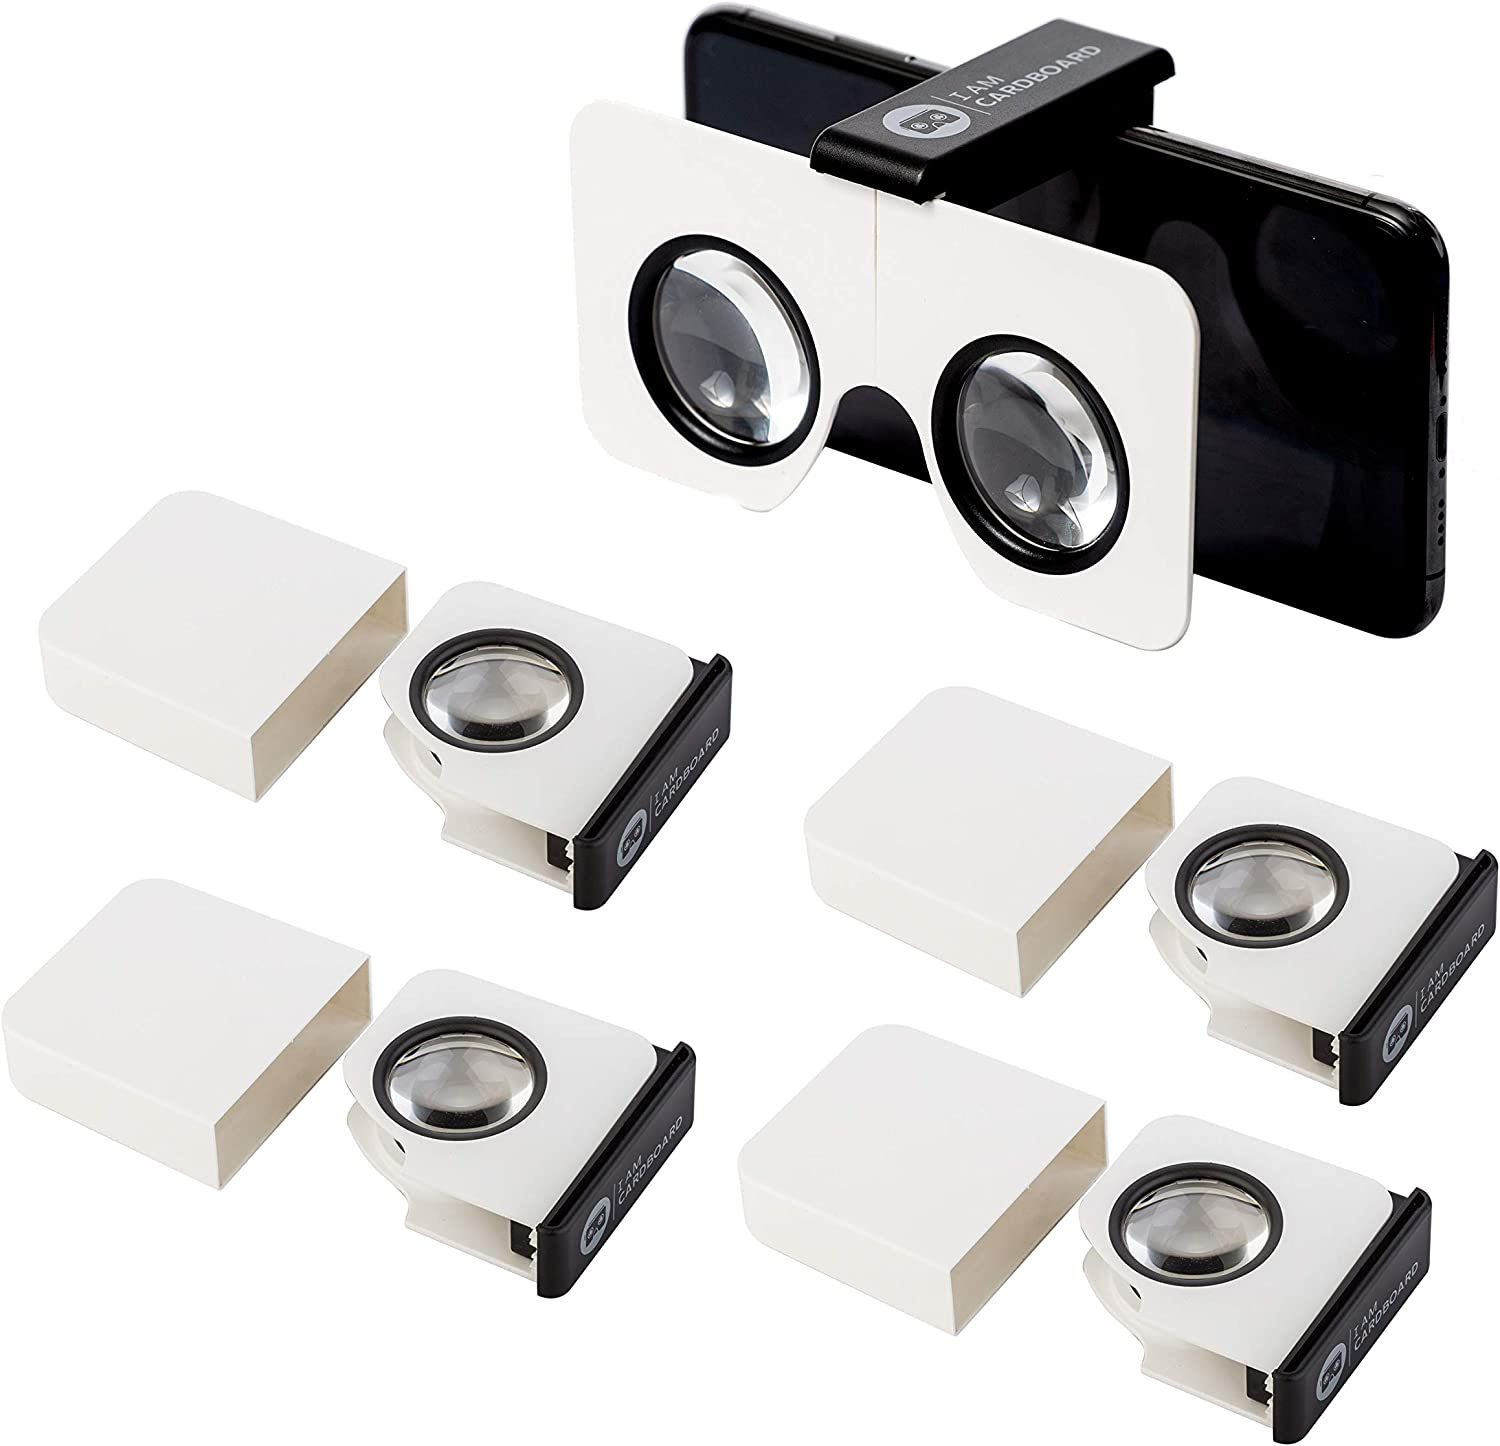 Five-Pack Pocket 360 Mini VR Viewer | The Best Google Cardboard Virtual Reality Glasses | Google Cardboard v2 Inspired | Small and Unique Travel Gift Pack of 5